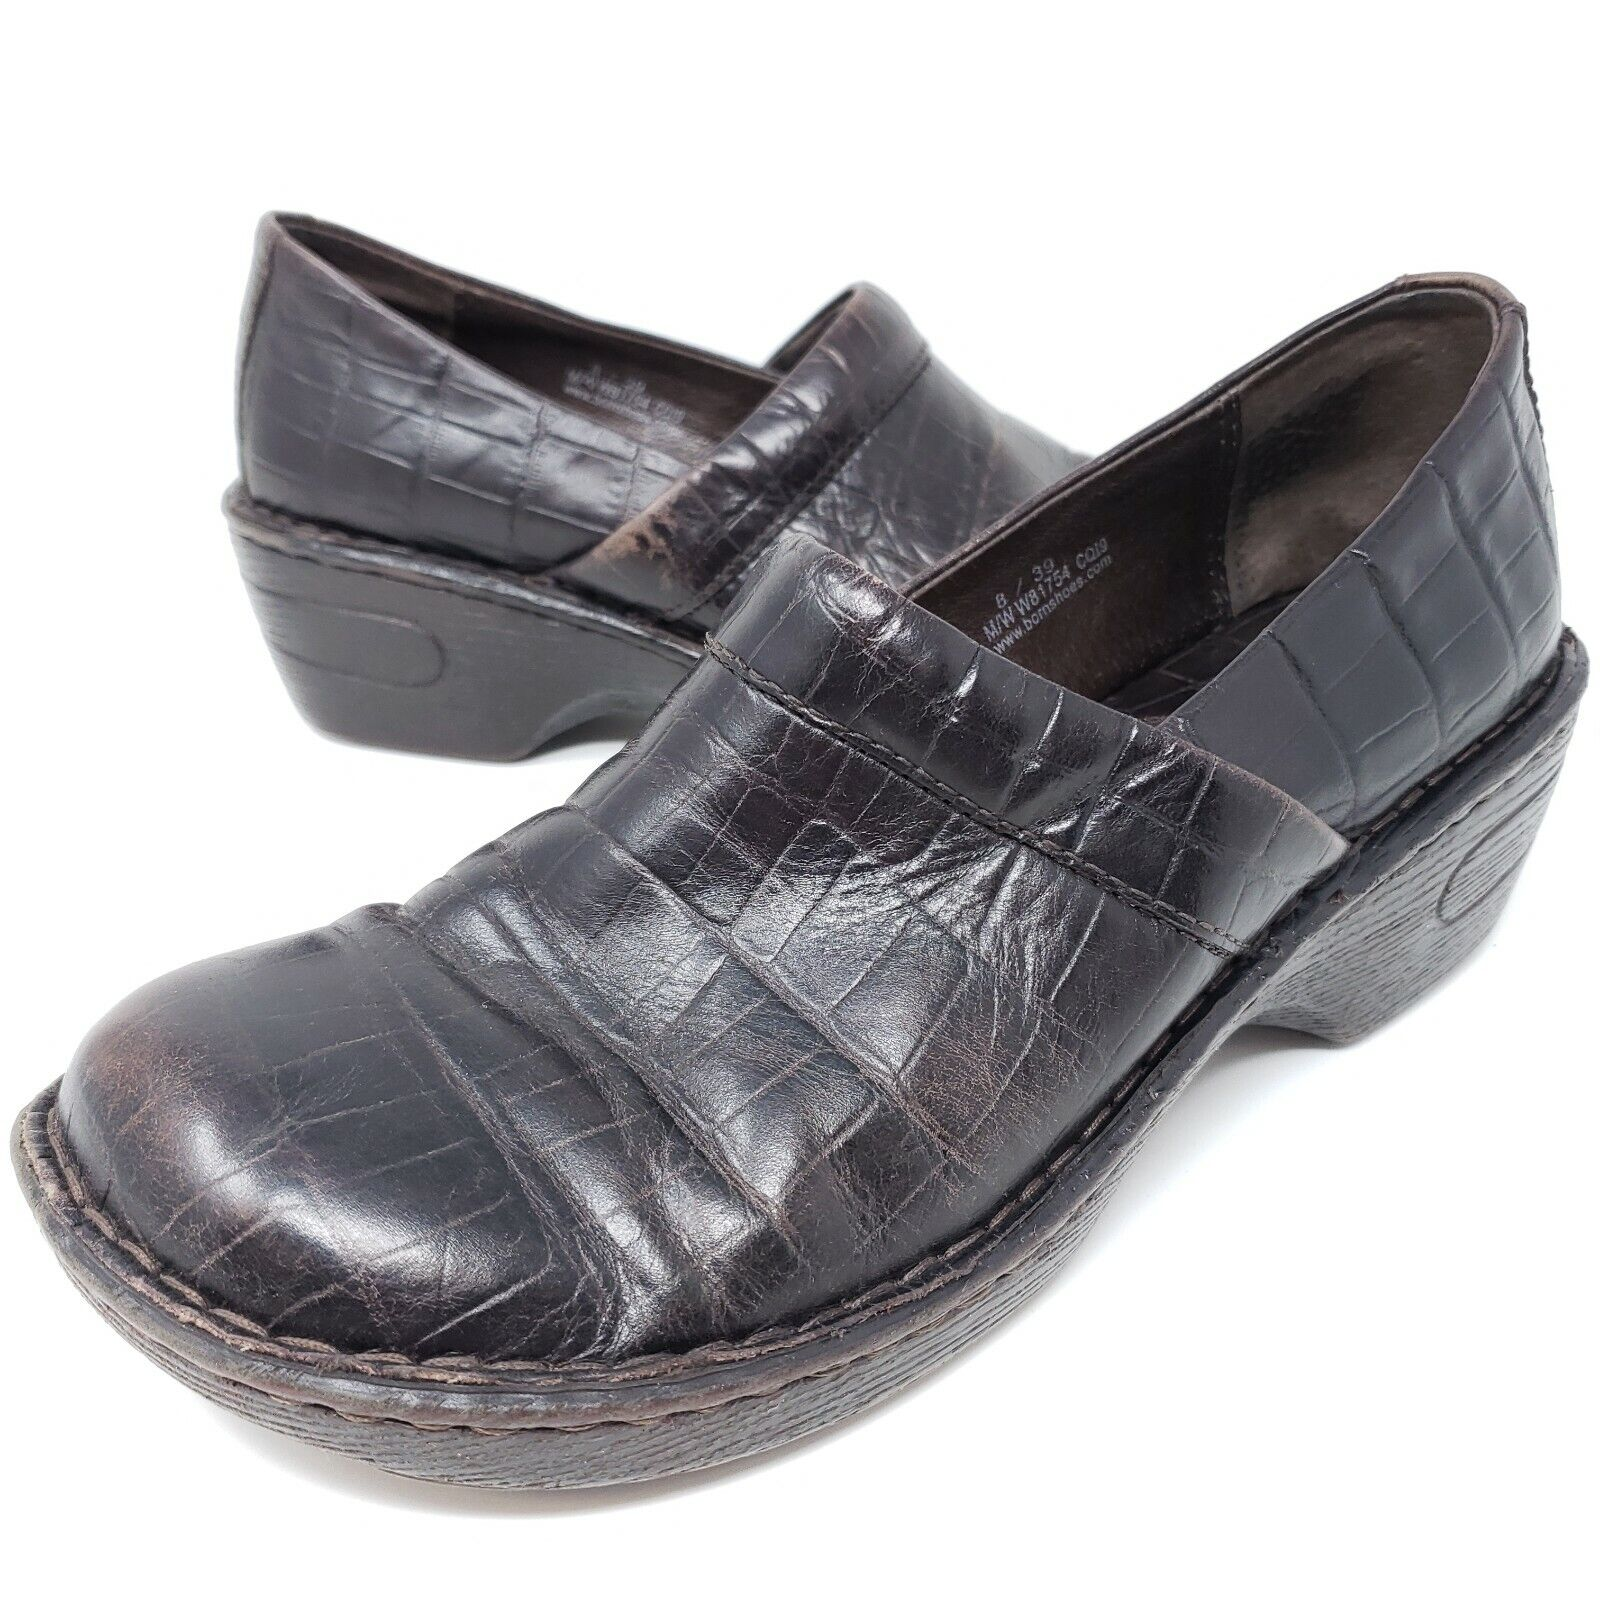 BOC Born Womens Clogs Brown Leather Reptile Slip On Comfort Shoes Sz 8 / 39